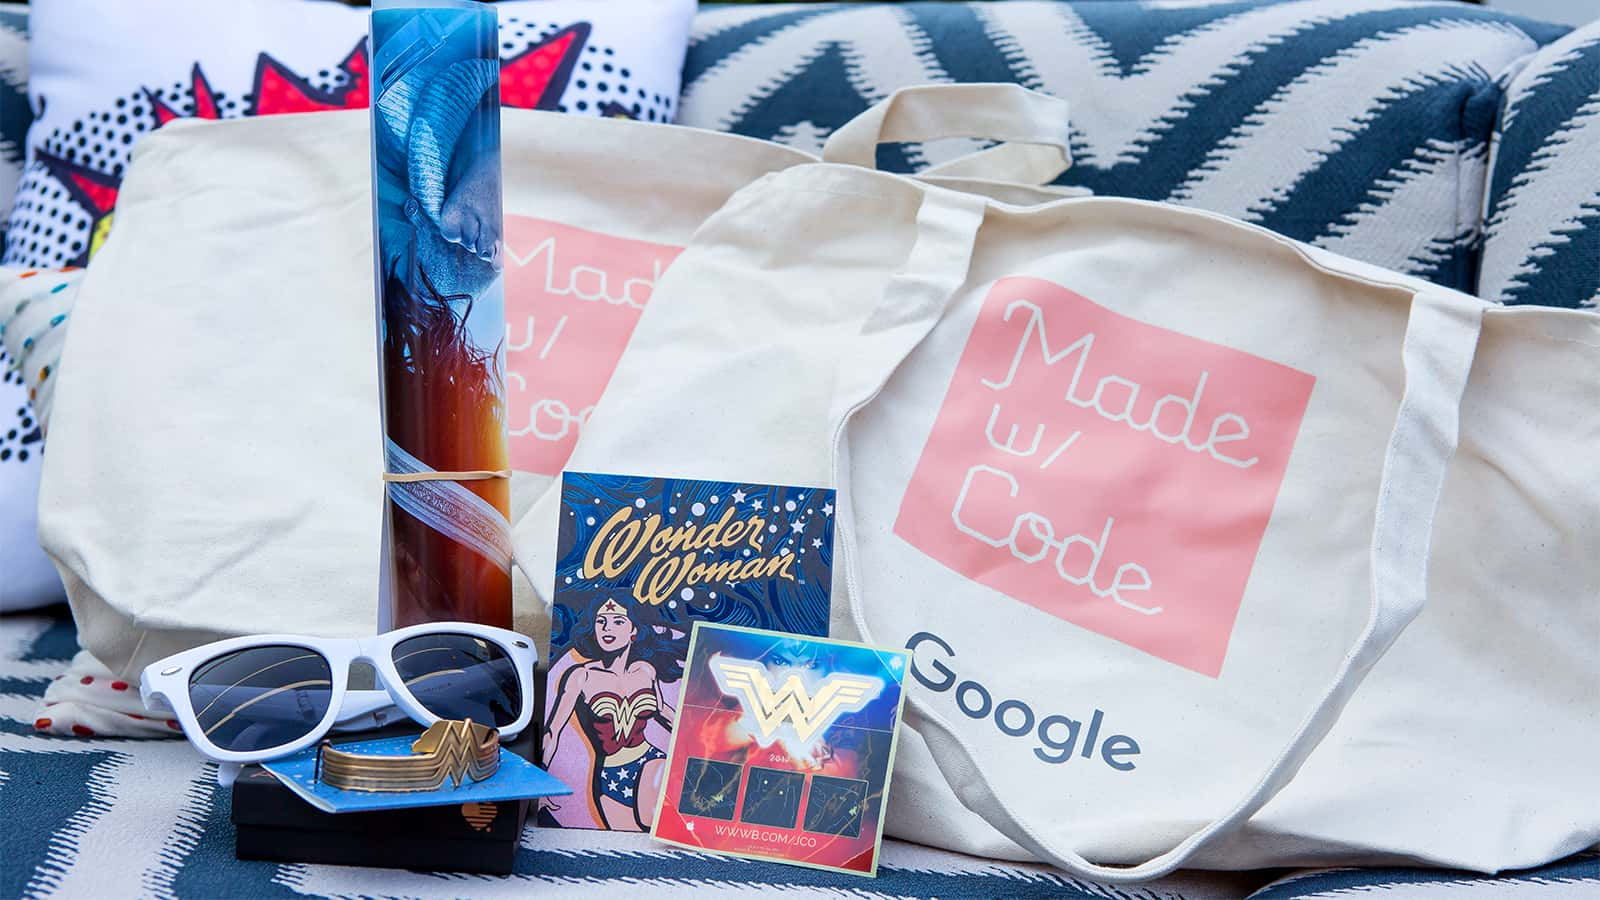 Swag bags at the Google Made with Code Wonder Woman 2017 event.